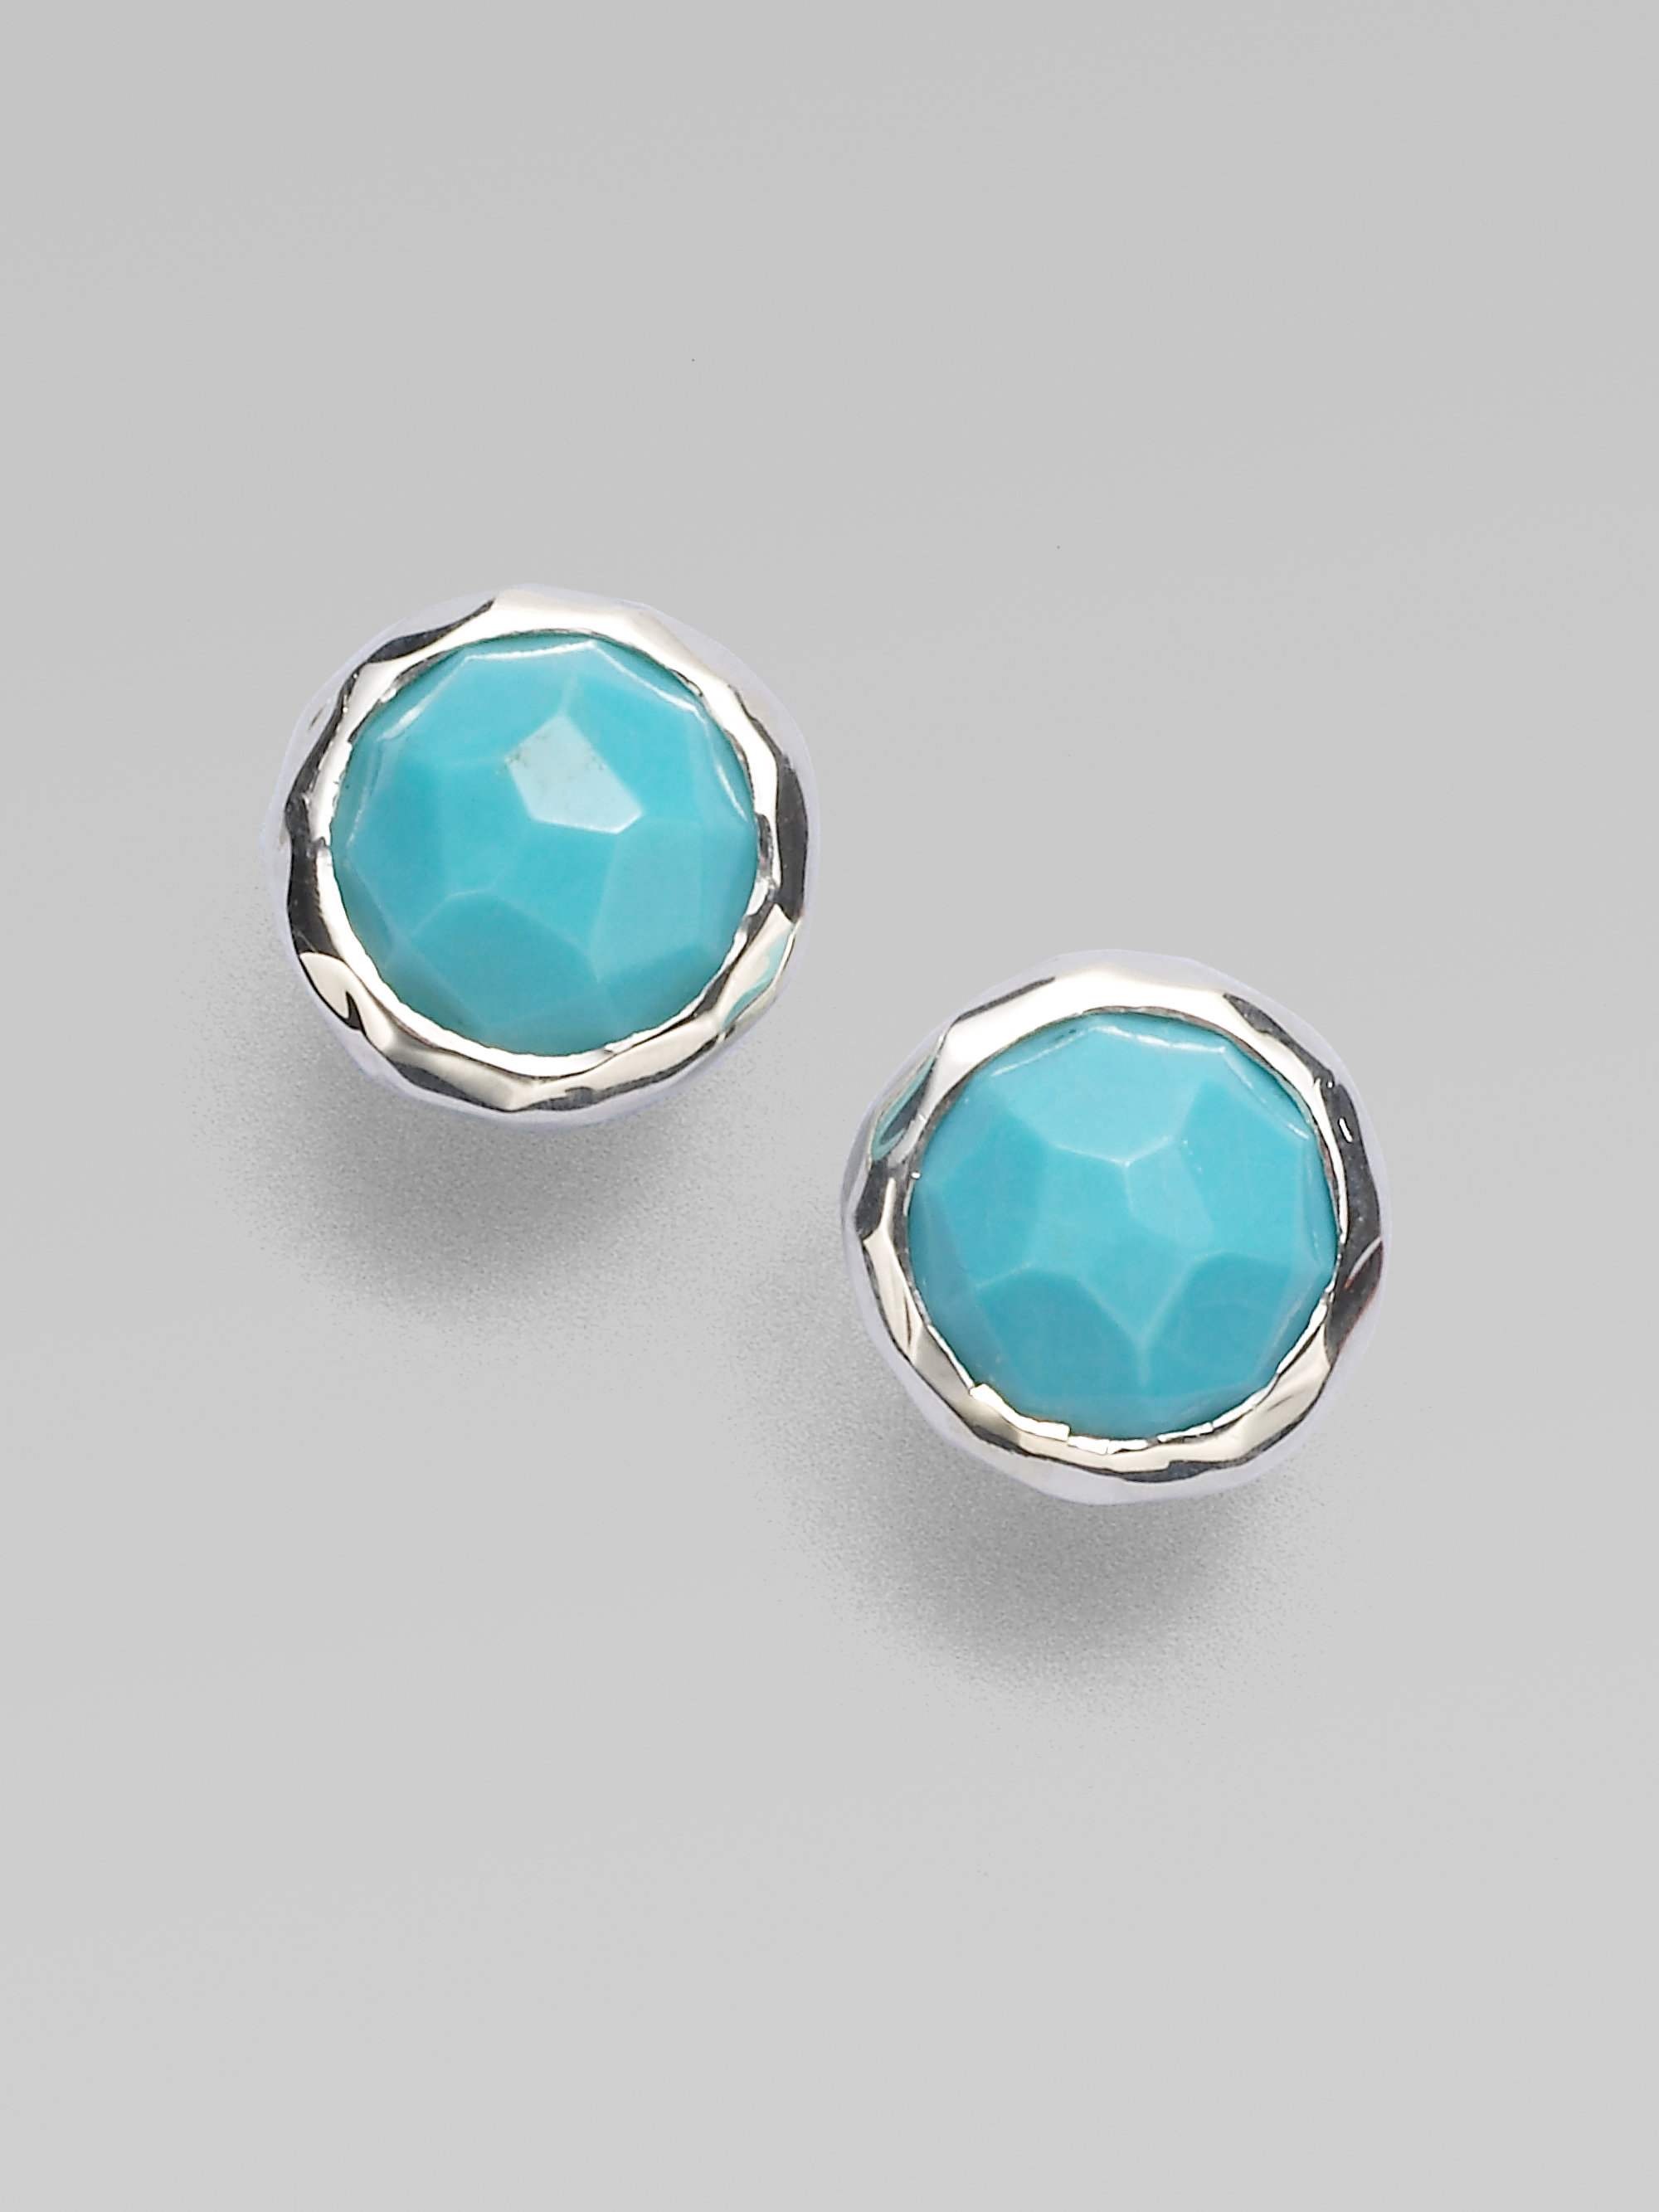 elegant designer diamond earrings big stud women fashion addic turquoise jewellery